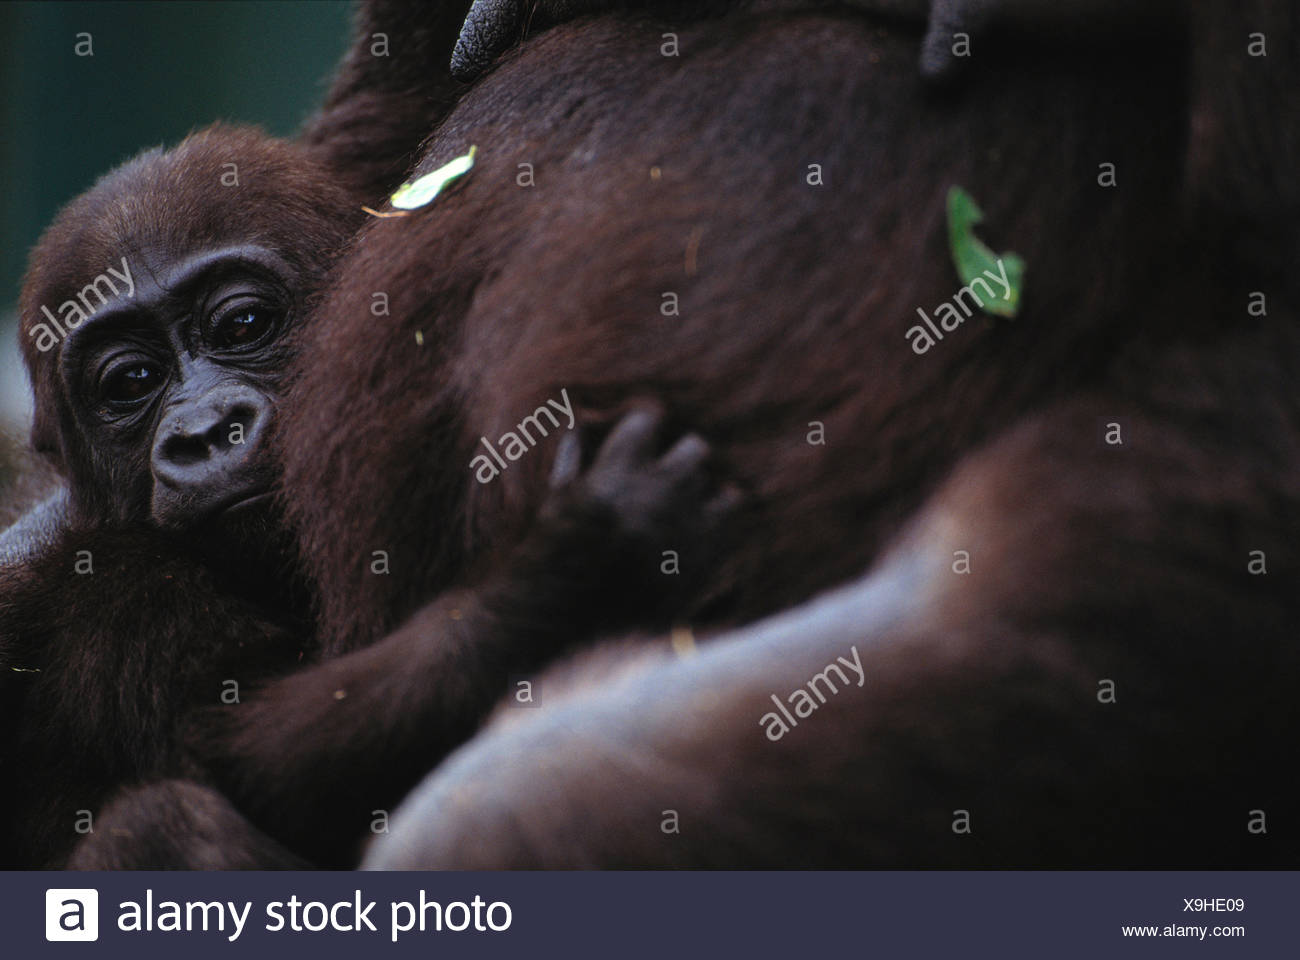 Lowland gorilla and infant, Uganda - Stock Image